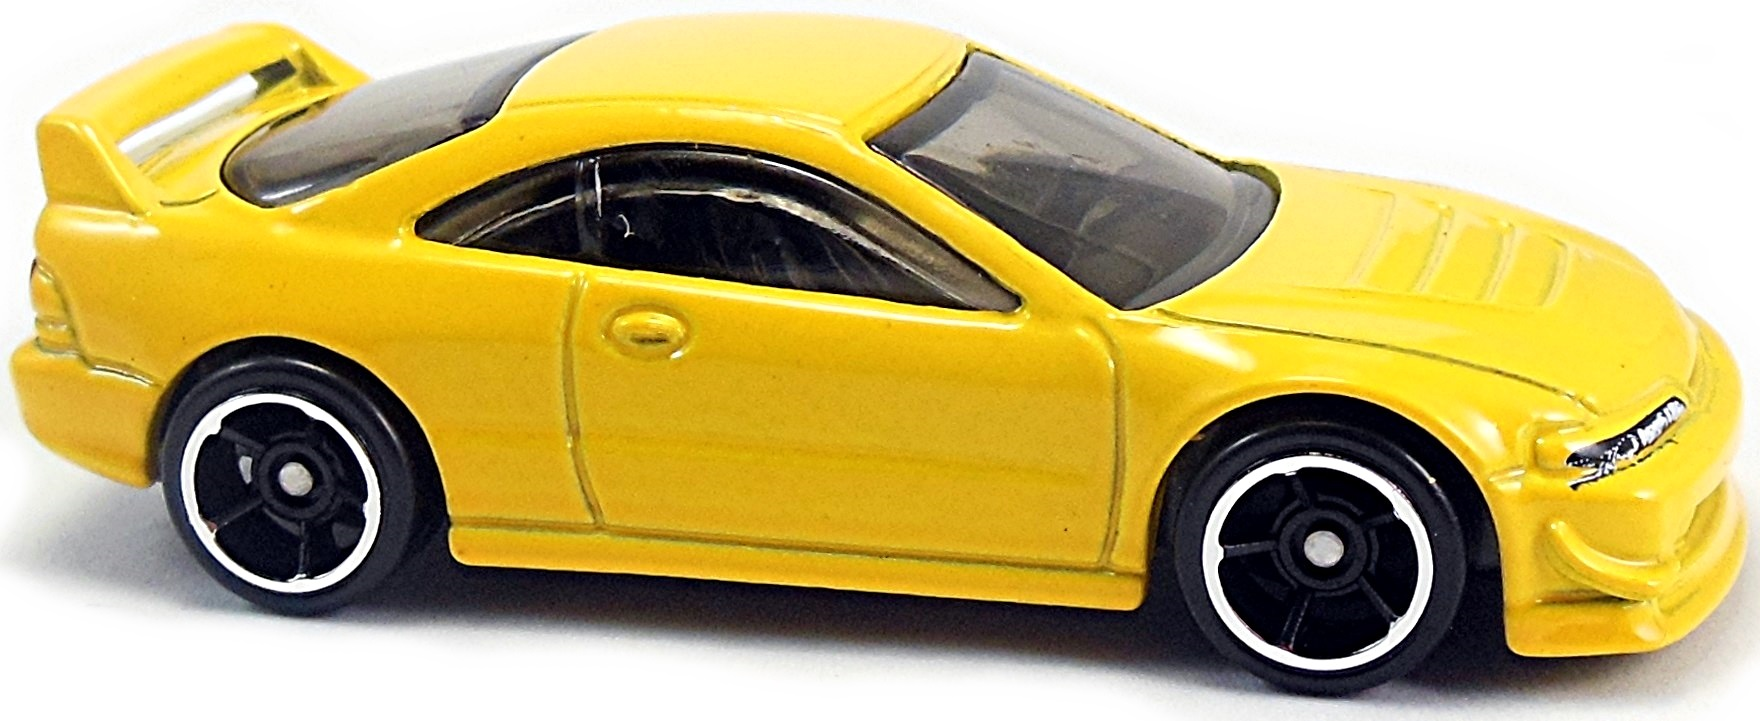 Custom '01 Acura Integra GSR - 67mm - 2016 | Hot Wheels Newsletter on 2008 mitsubishi lancer evolution gsr, acura 3.2tl, acura suv, acura vigor, acura rsx, acura nsx, acura cl, stanced acura gsr, mitsubishi eclipse gsr, acura 2.2cl, acura el, acura rims, acura tsx, acura gsx, honda gsr, acura tl, acura mdx, mitsubishi evo gsr, acura legend,